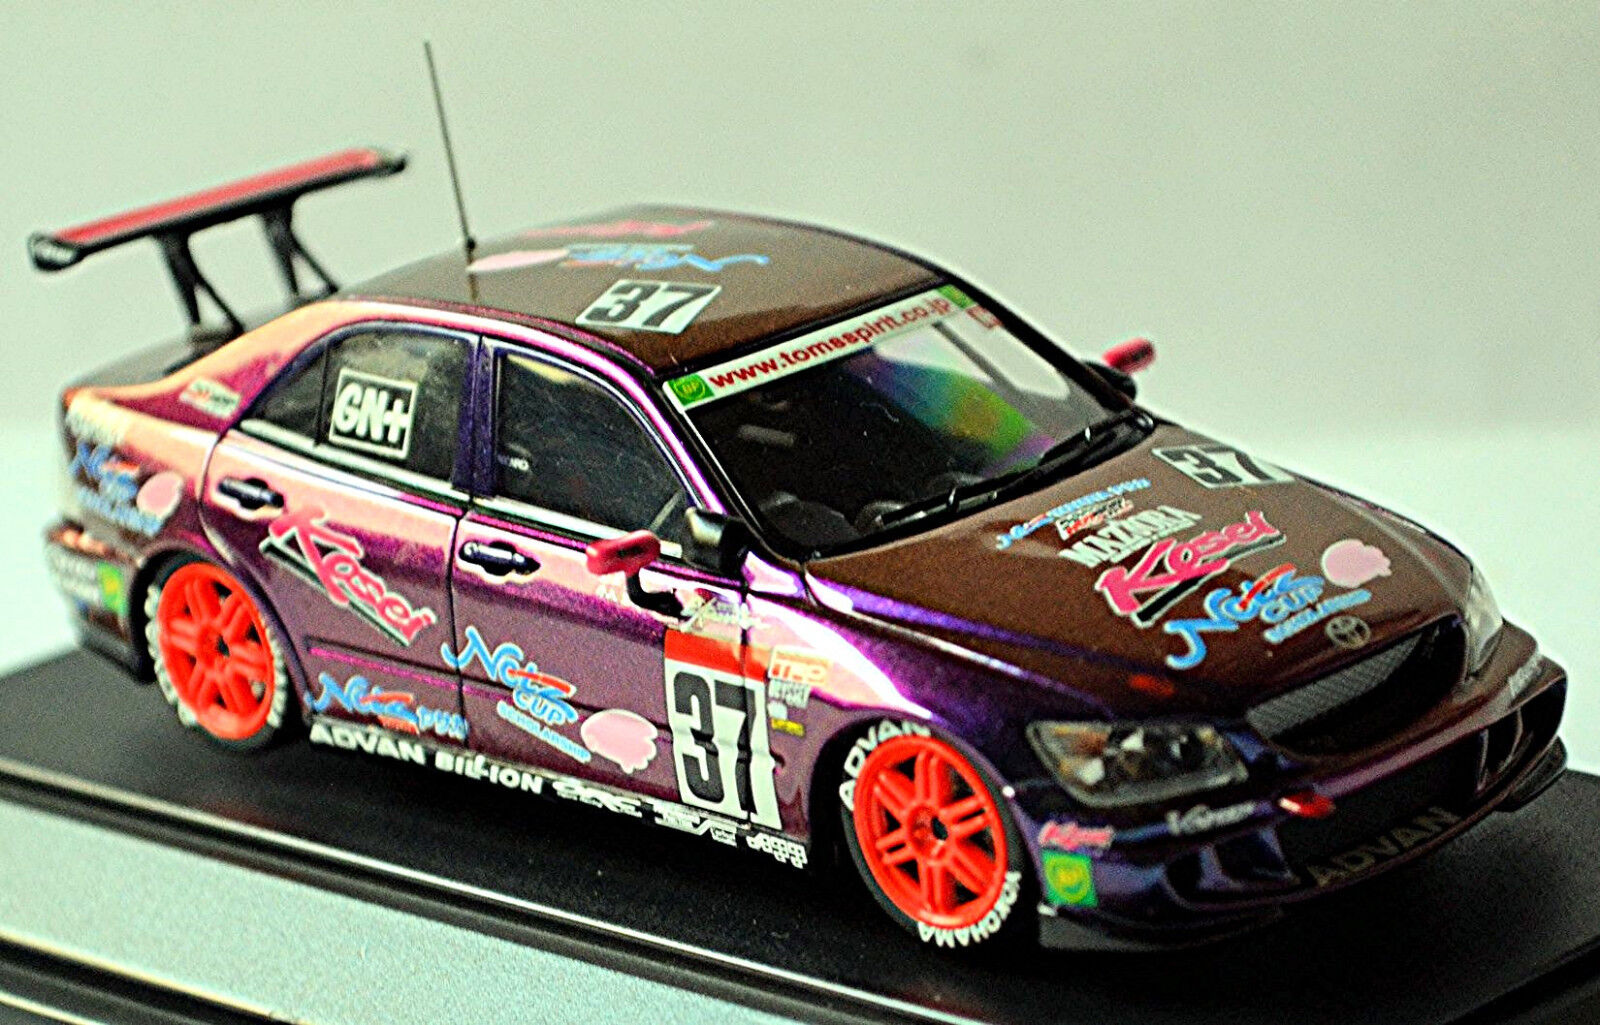 Toyota Altezza  37 Maziora Kosei 2003 lila effekt metal magic-paint 1 43 Ebbro  | Komfort